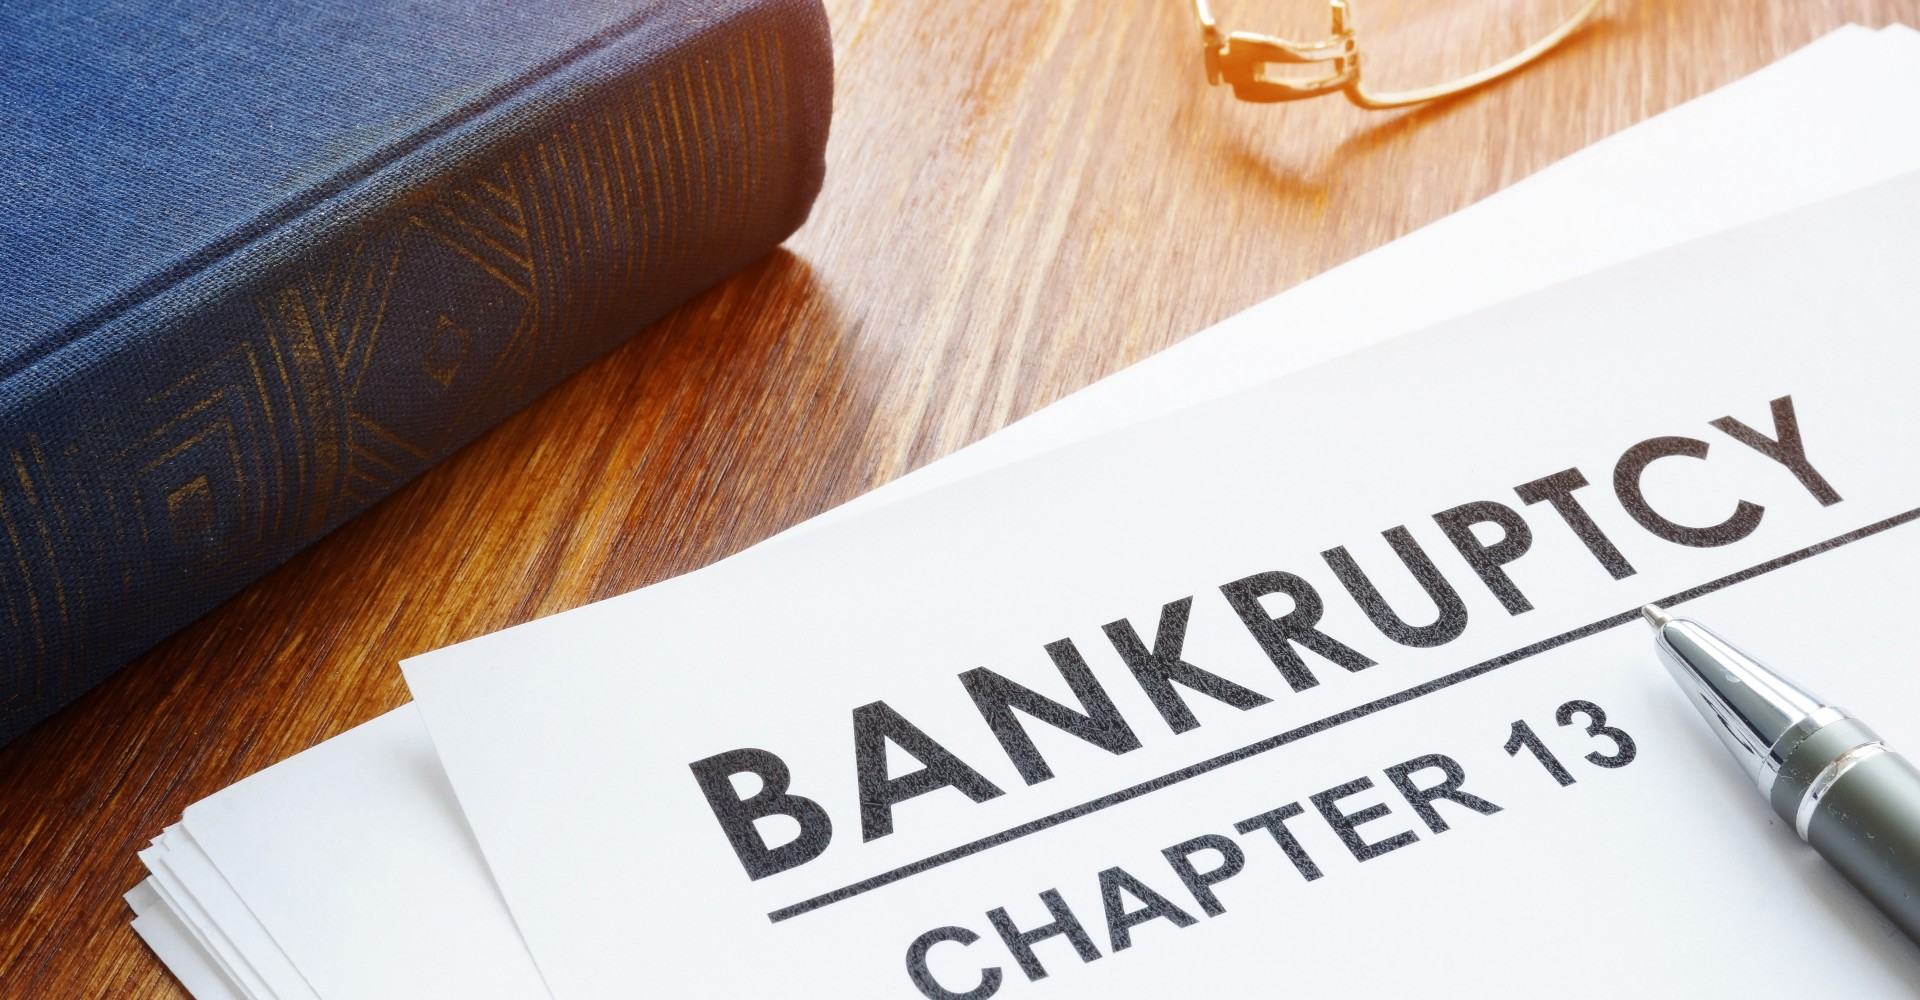 Chapter 13 Bankruptcy Attorney Miami Lakes, FL